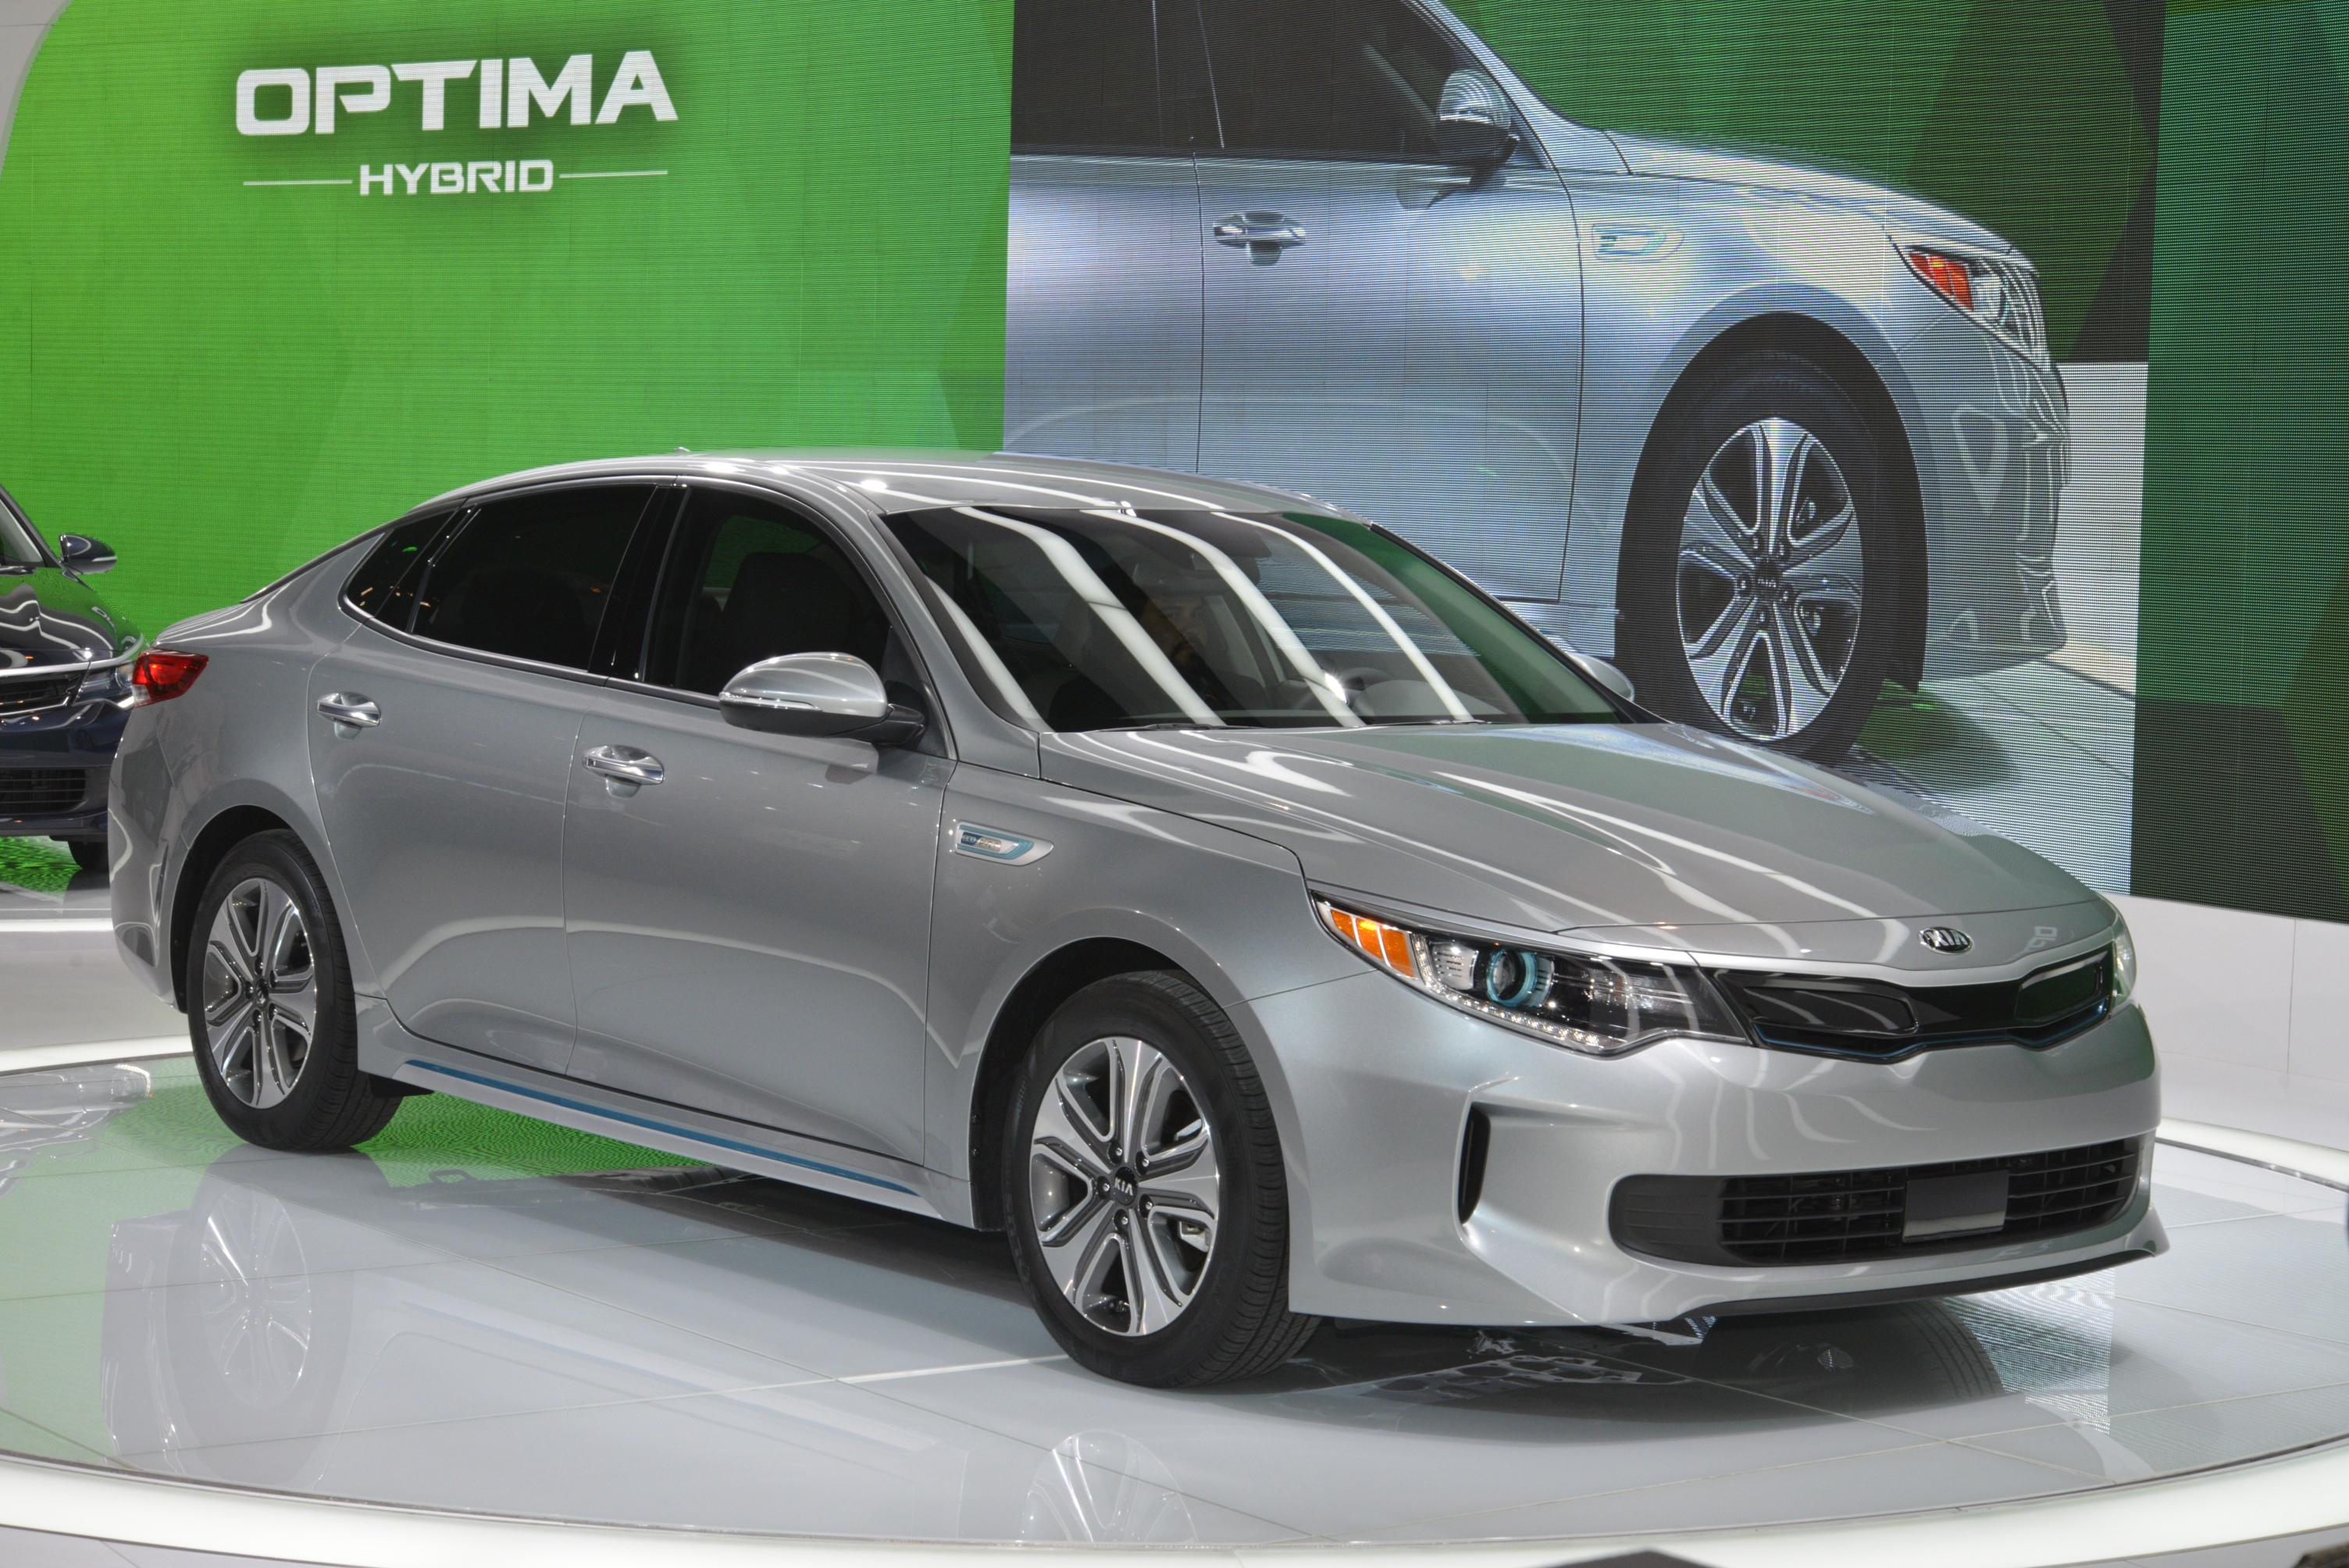 2017 kia optima hybrid unveiled with more compact battery and 2 liter engine autoevolution. Black Bedroom Furniture Sets. Home Design Ideas